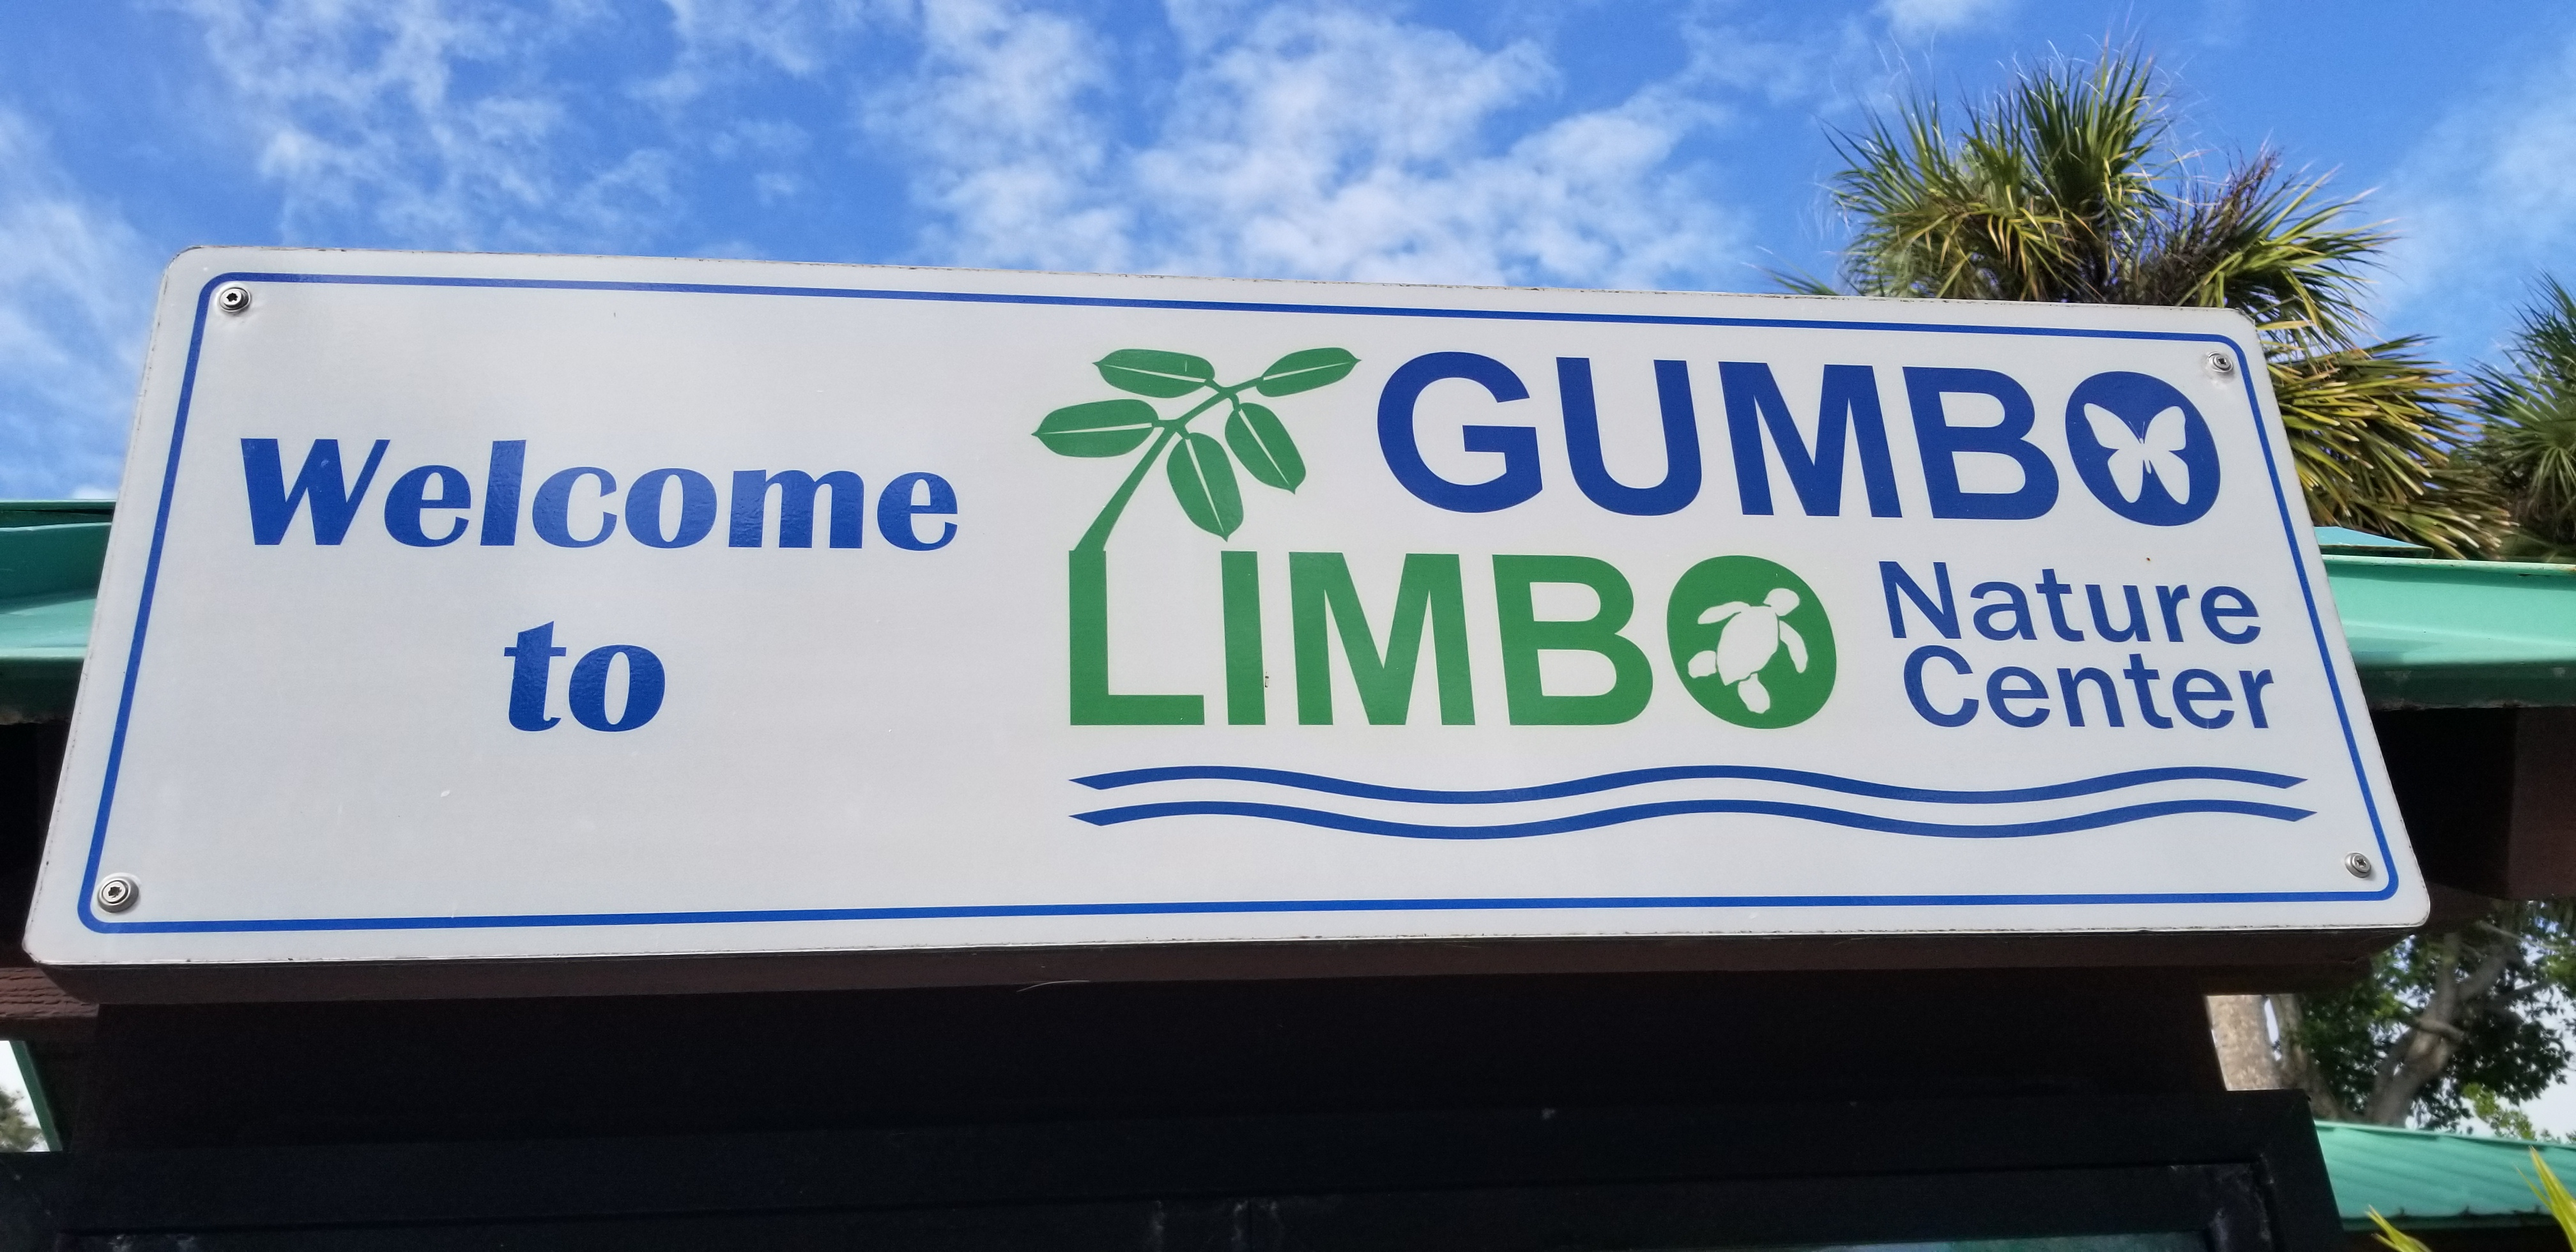 Gumbo Limbo: World Class Research, World Class Destination